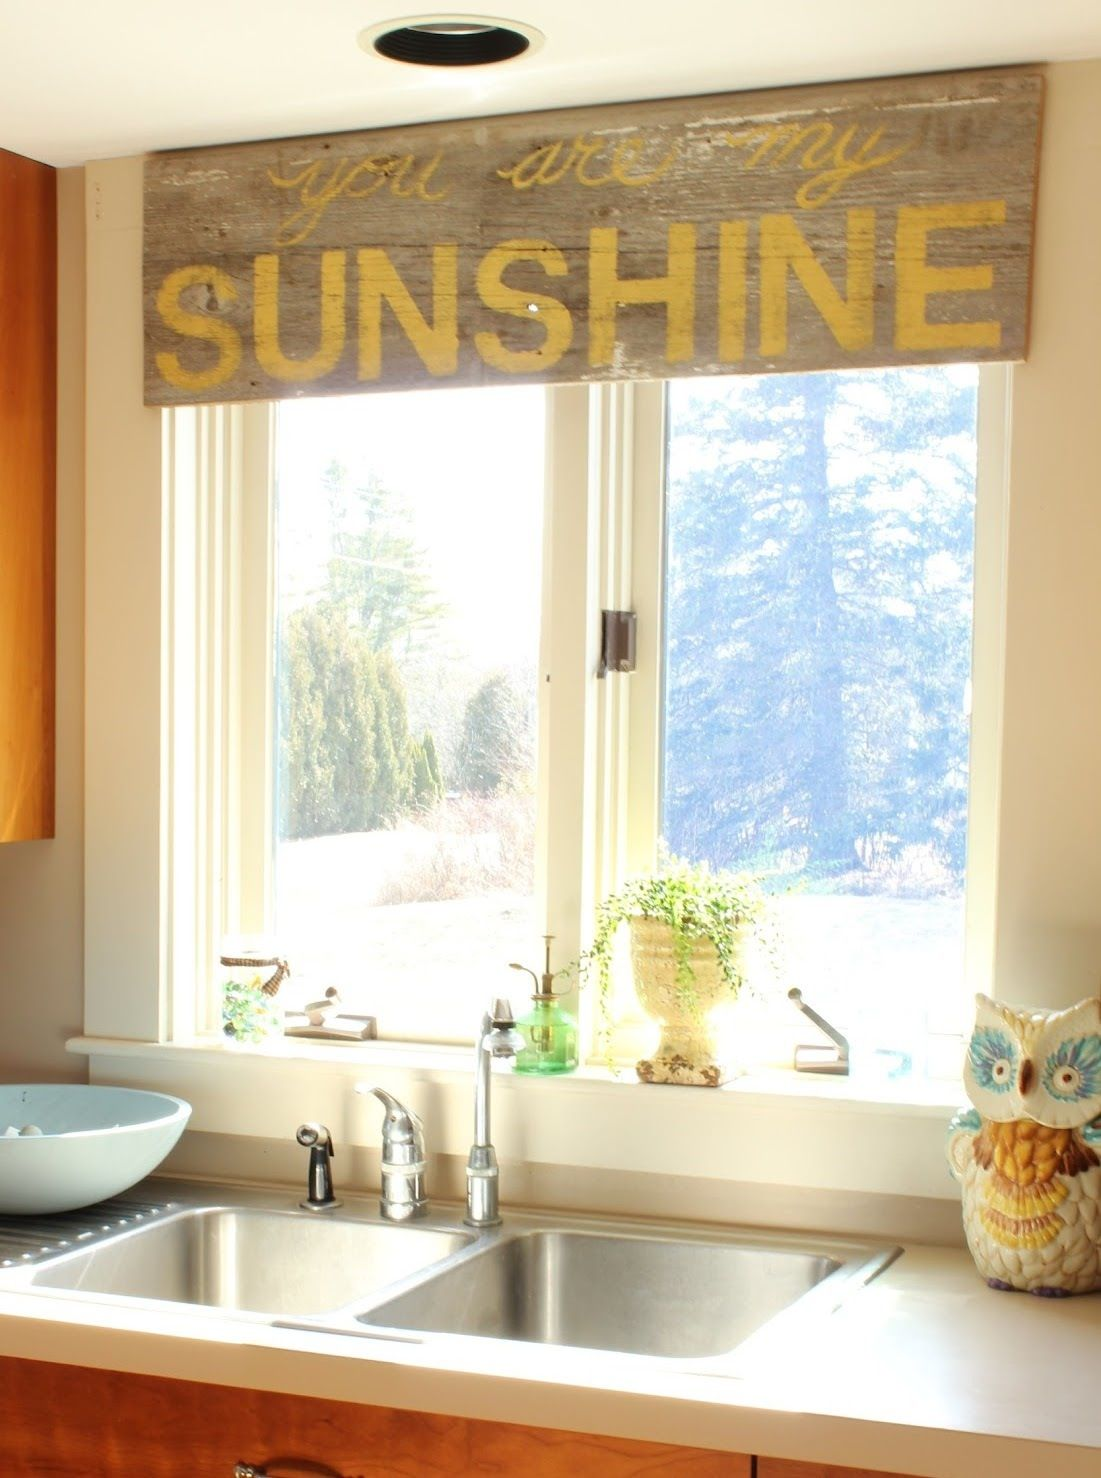 Window covering ideas   diy window treatments to update your space  fabric swatches